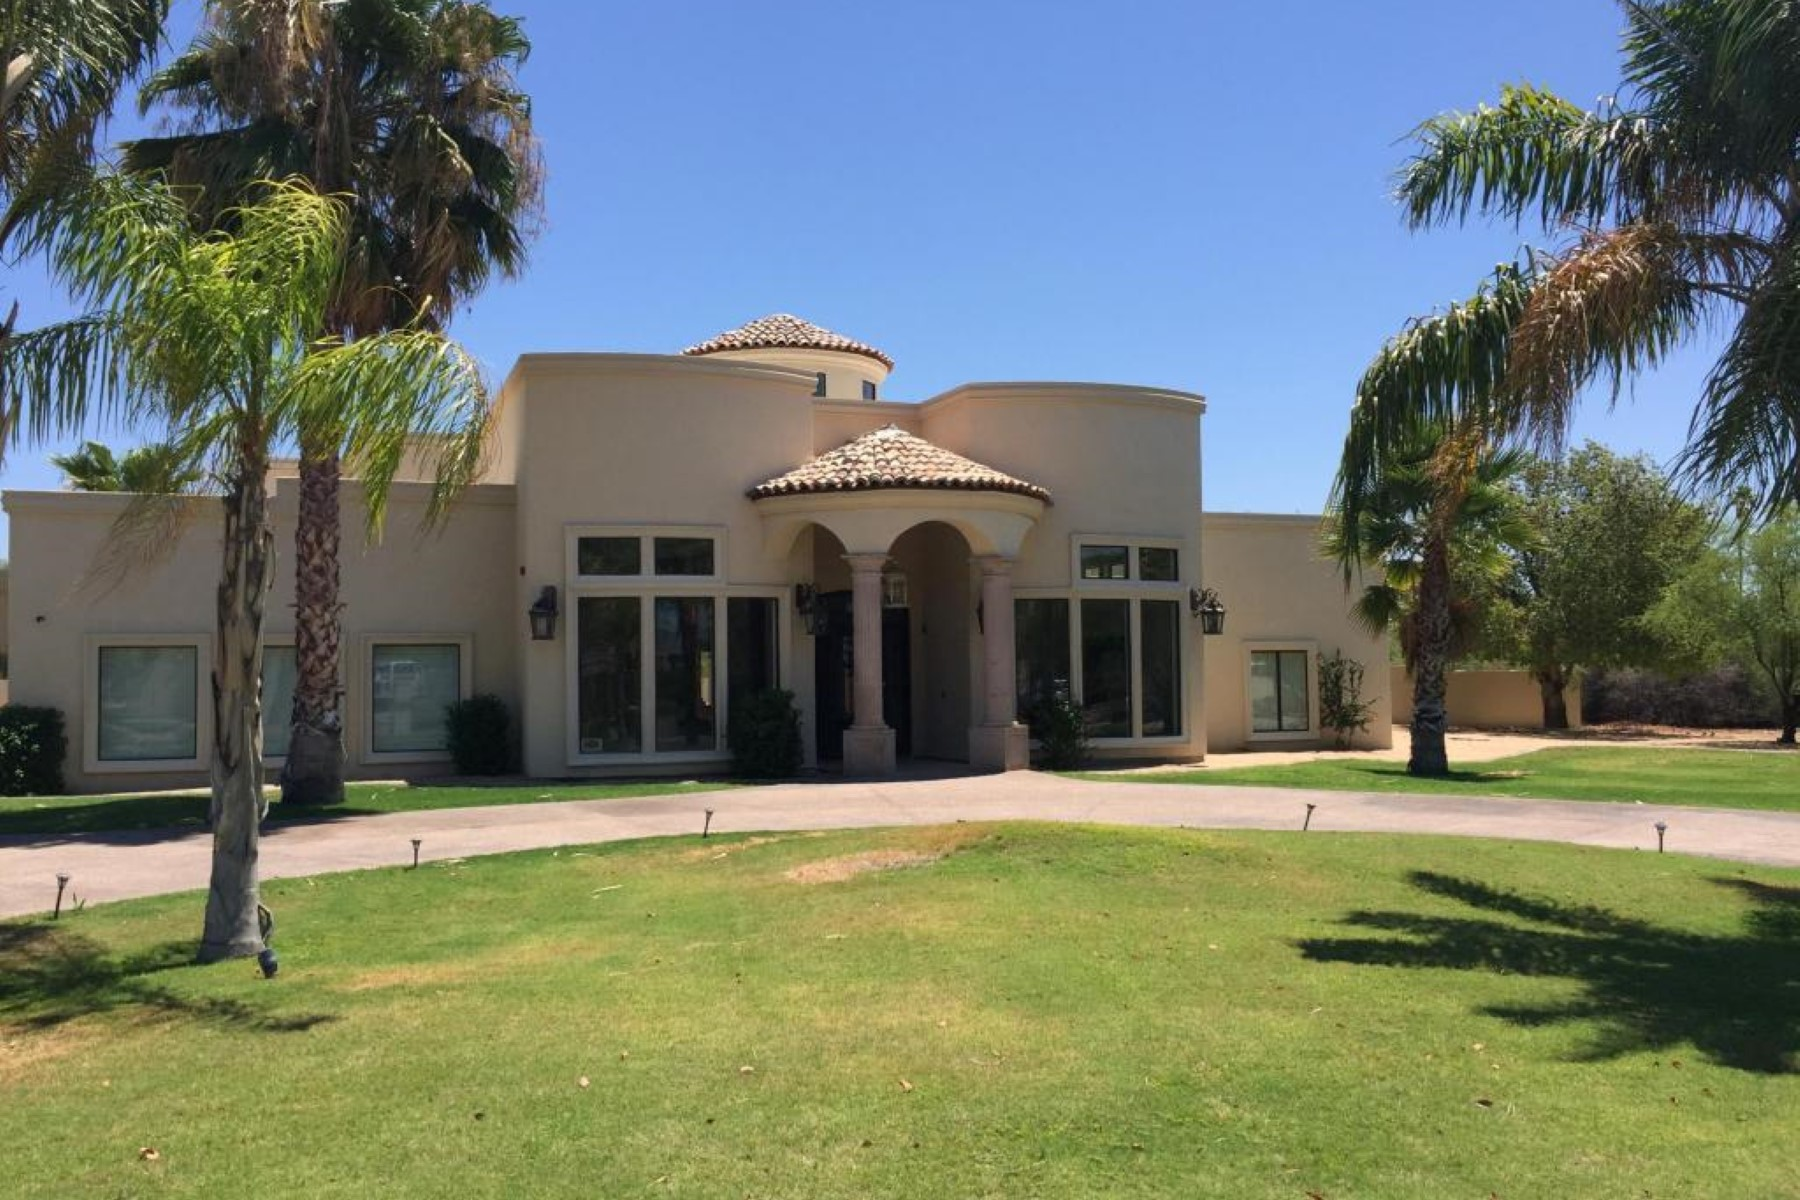 rentals property at Luxury Rental in Paradise Valley and just minutes to downtown Scottsdale.